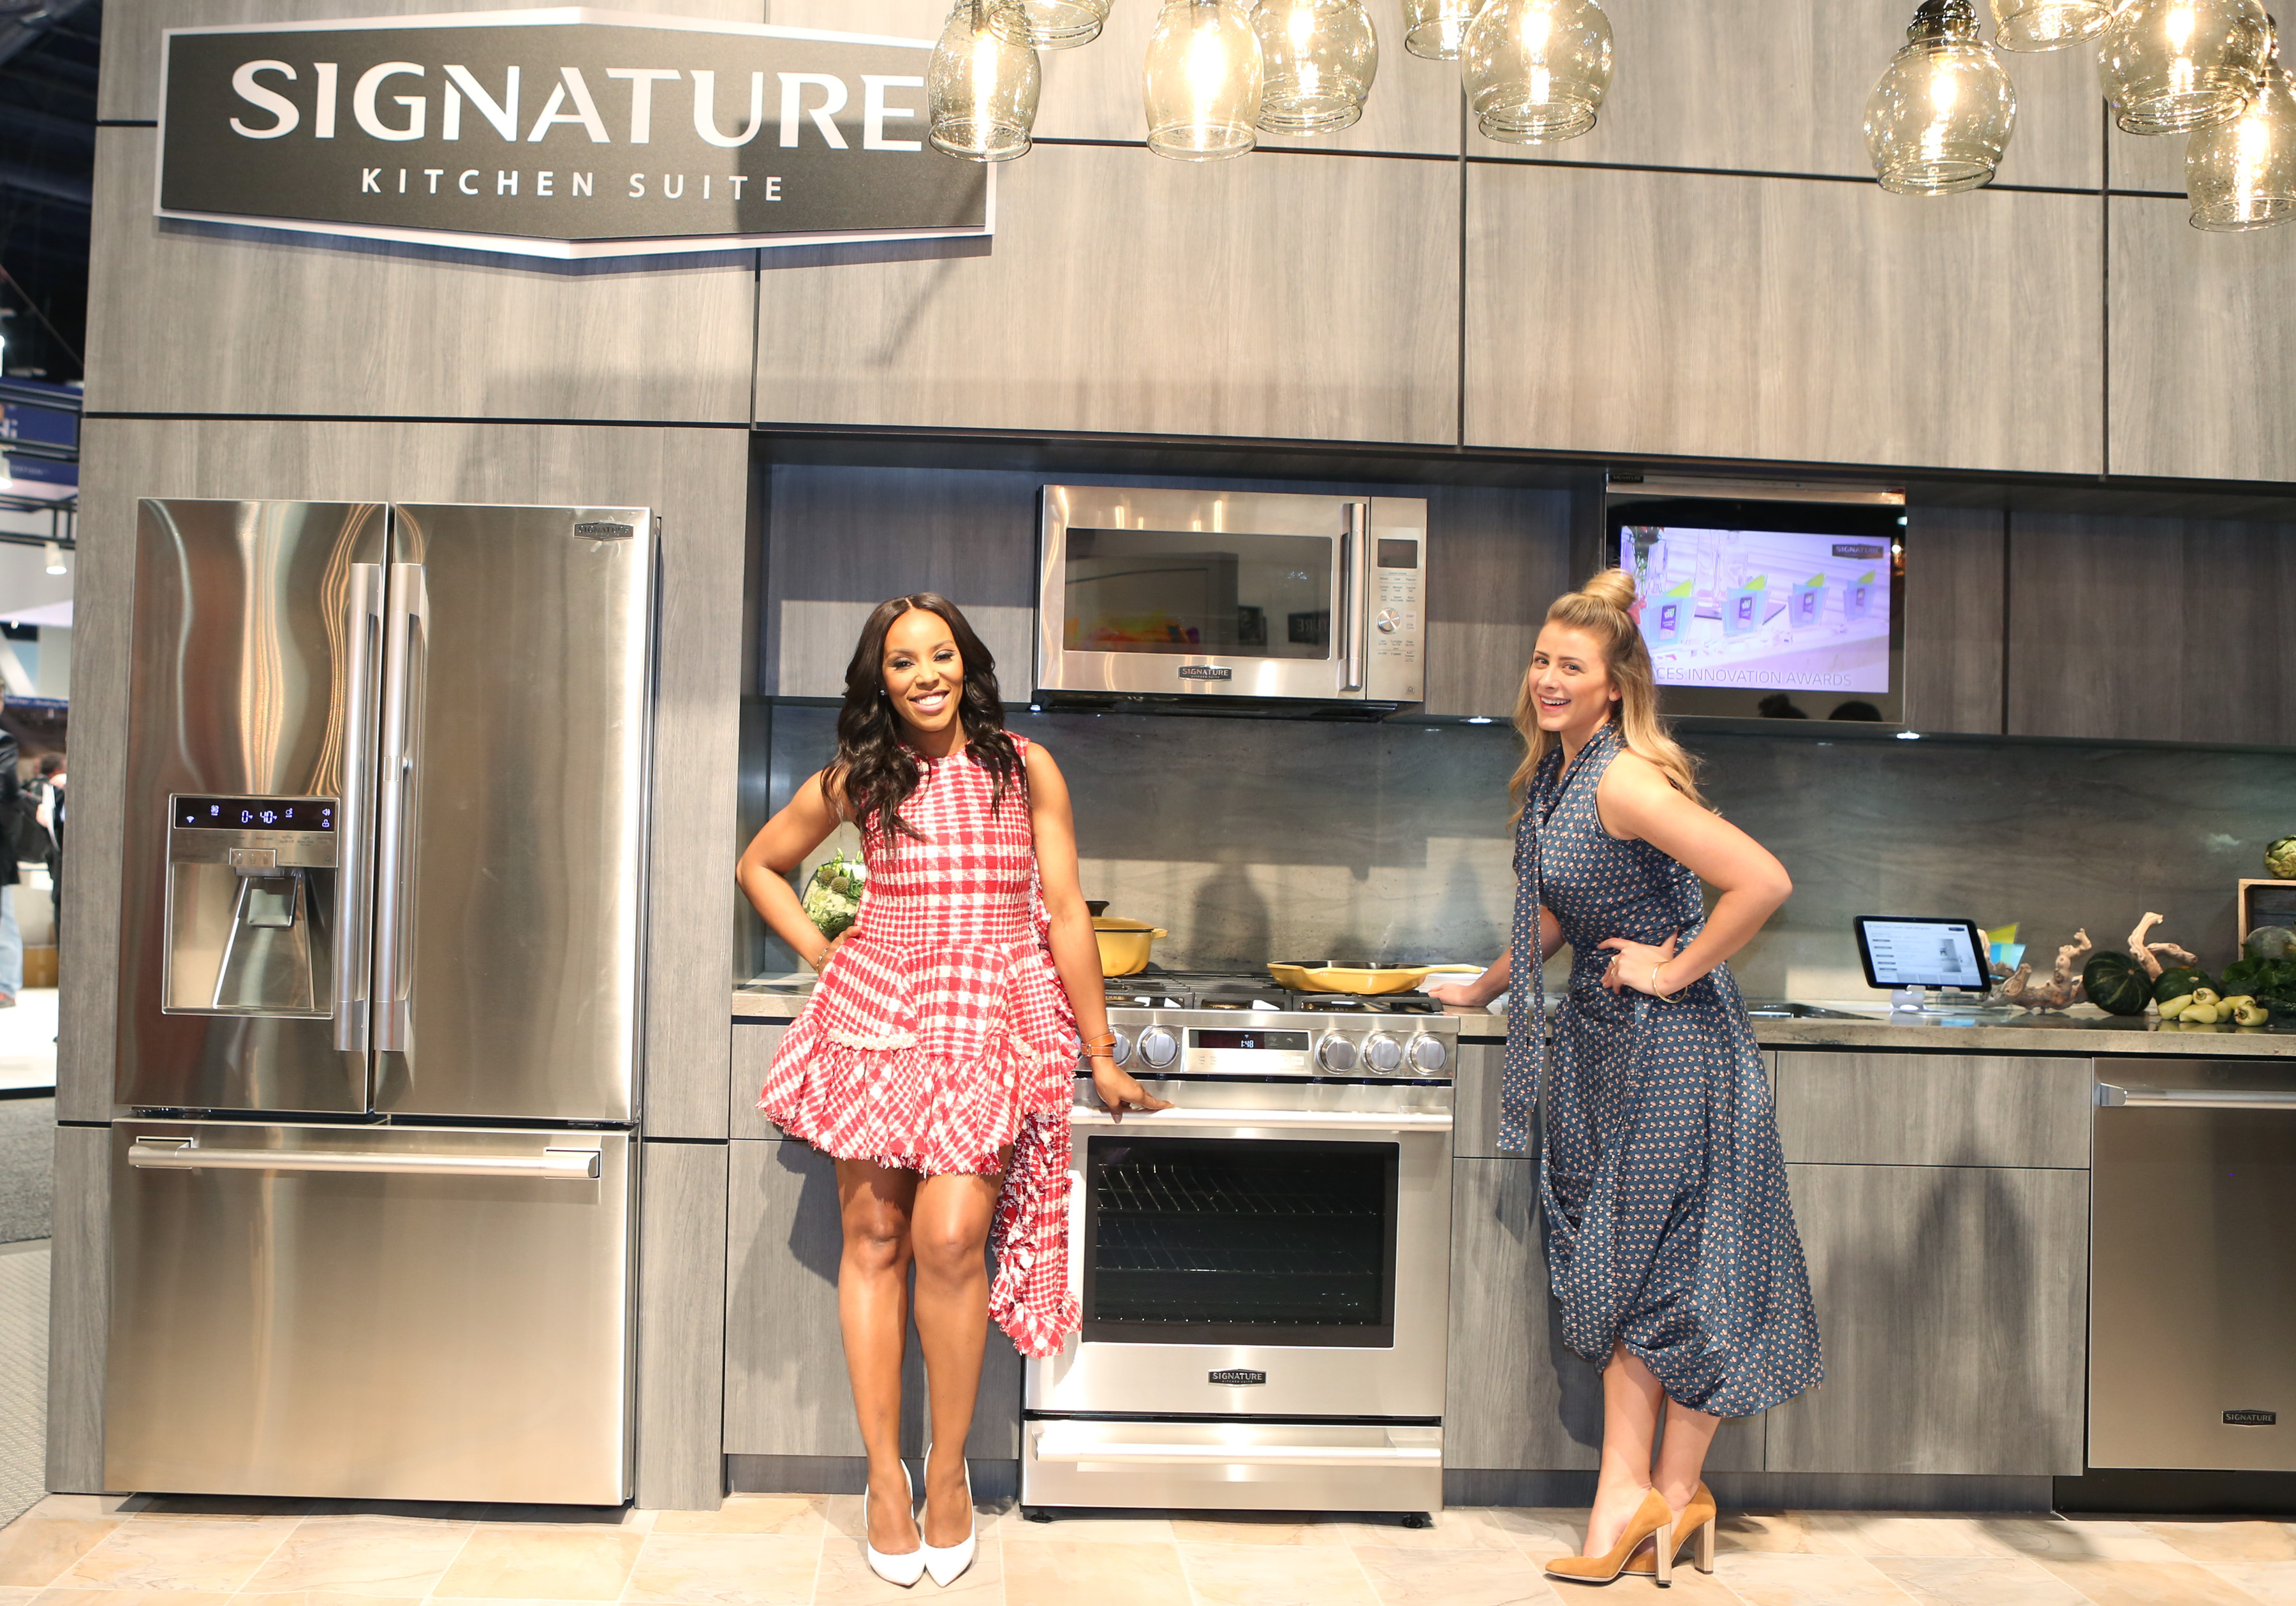 Fashion stylist June Ambrose, left, and lifestyle expert Lo Bosworth  celebrate the launch of Signature Kitchen Suite at the Kitchen and Bath Industry Show in Las Vegas on January 19, 2016, at Las Vegas Convention Center. (Photo by Bizuayehu Tesfaye/AP Images for Signature Kitchen Suite)